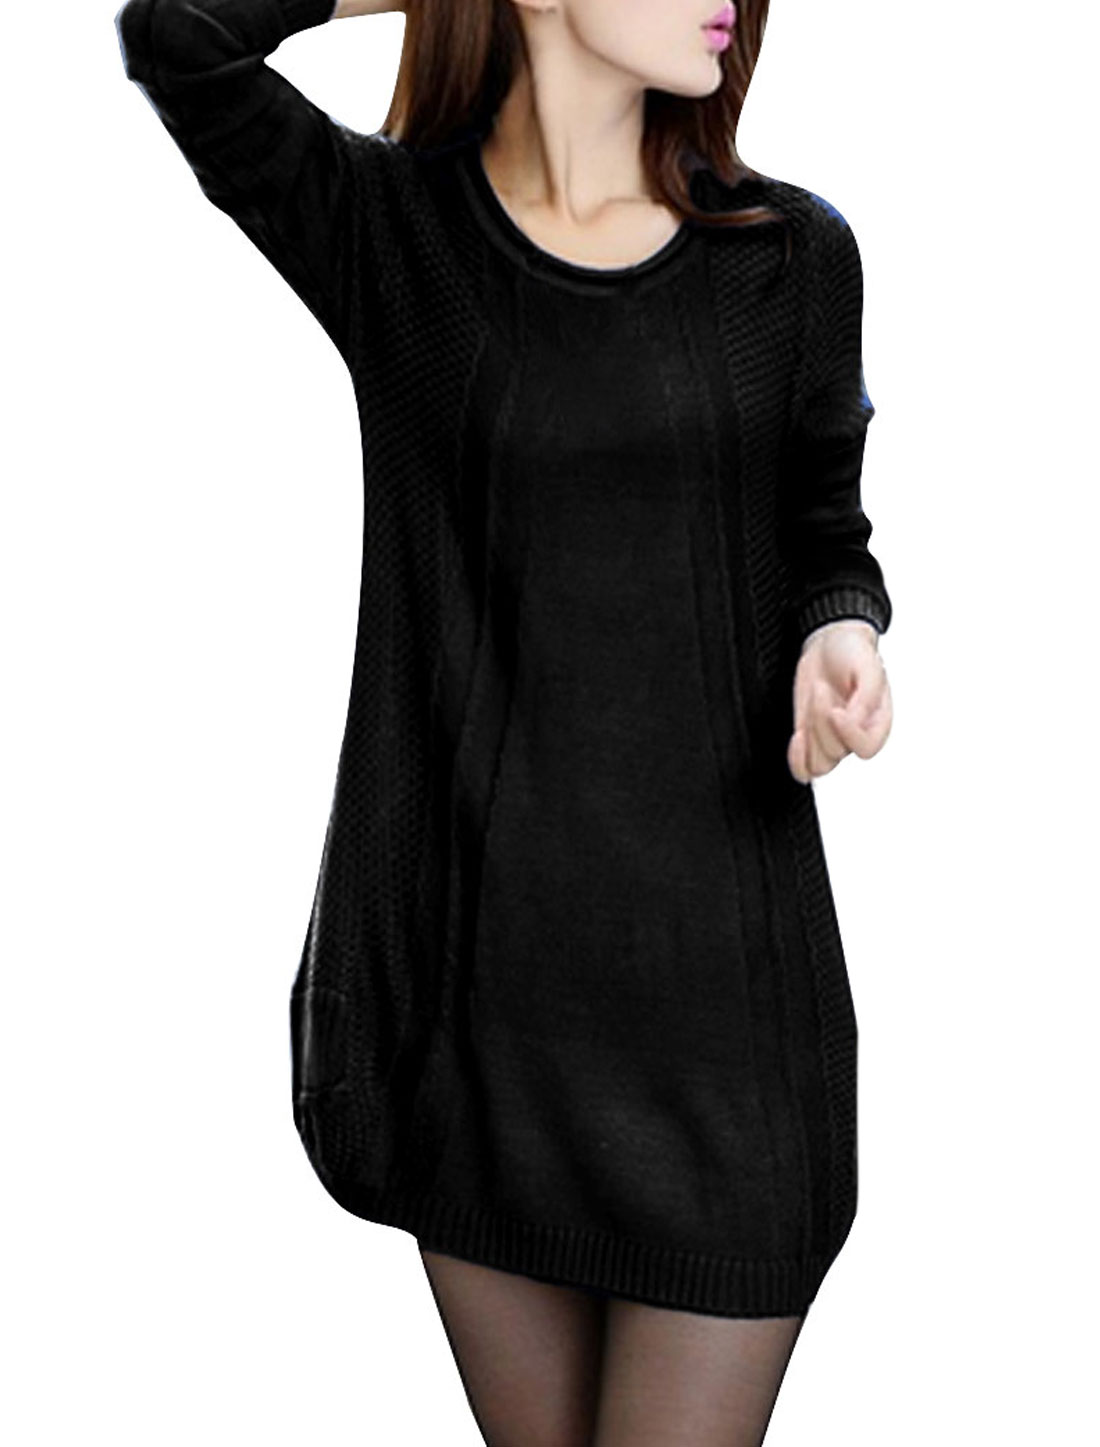 Woman Round Neck Long Sleeve Textured Design Pullover Black Sweater XS